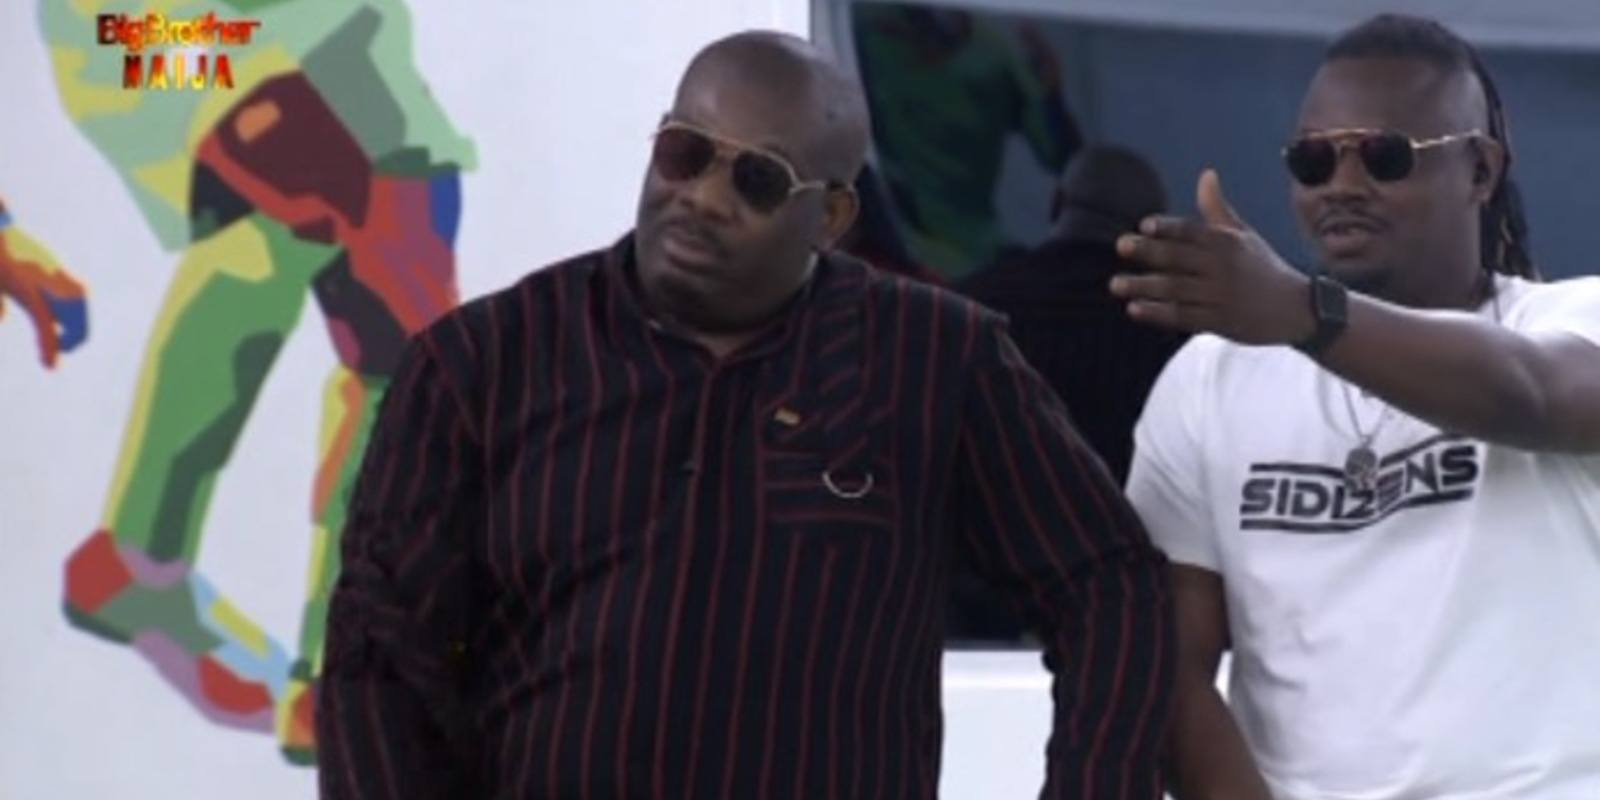 DON JAZZY CELEBRATES 1 YEAR OF 'NO SMOKING', DAVIDO QUITTING SOON